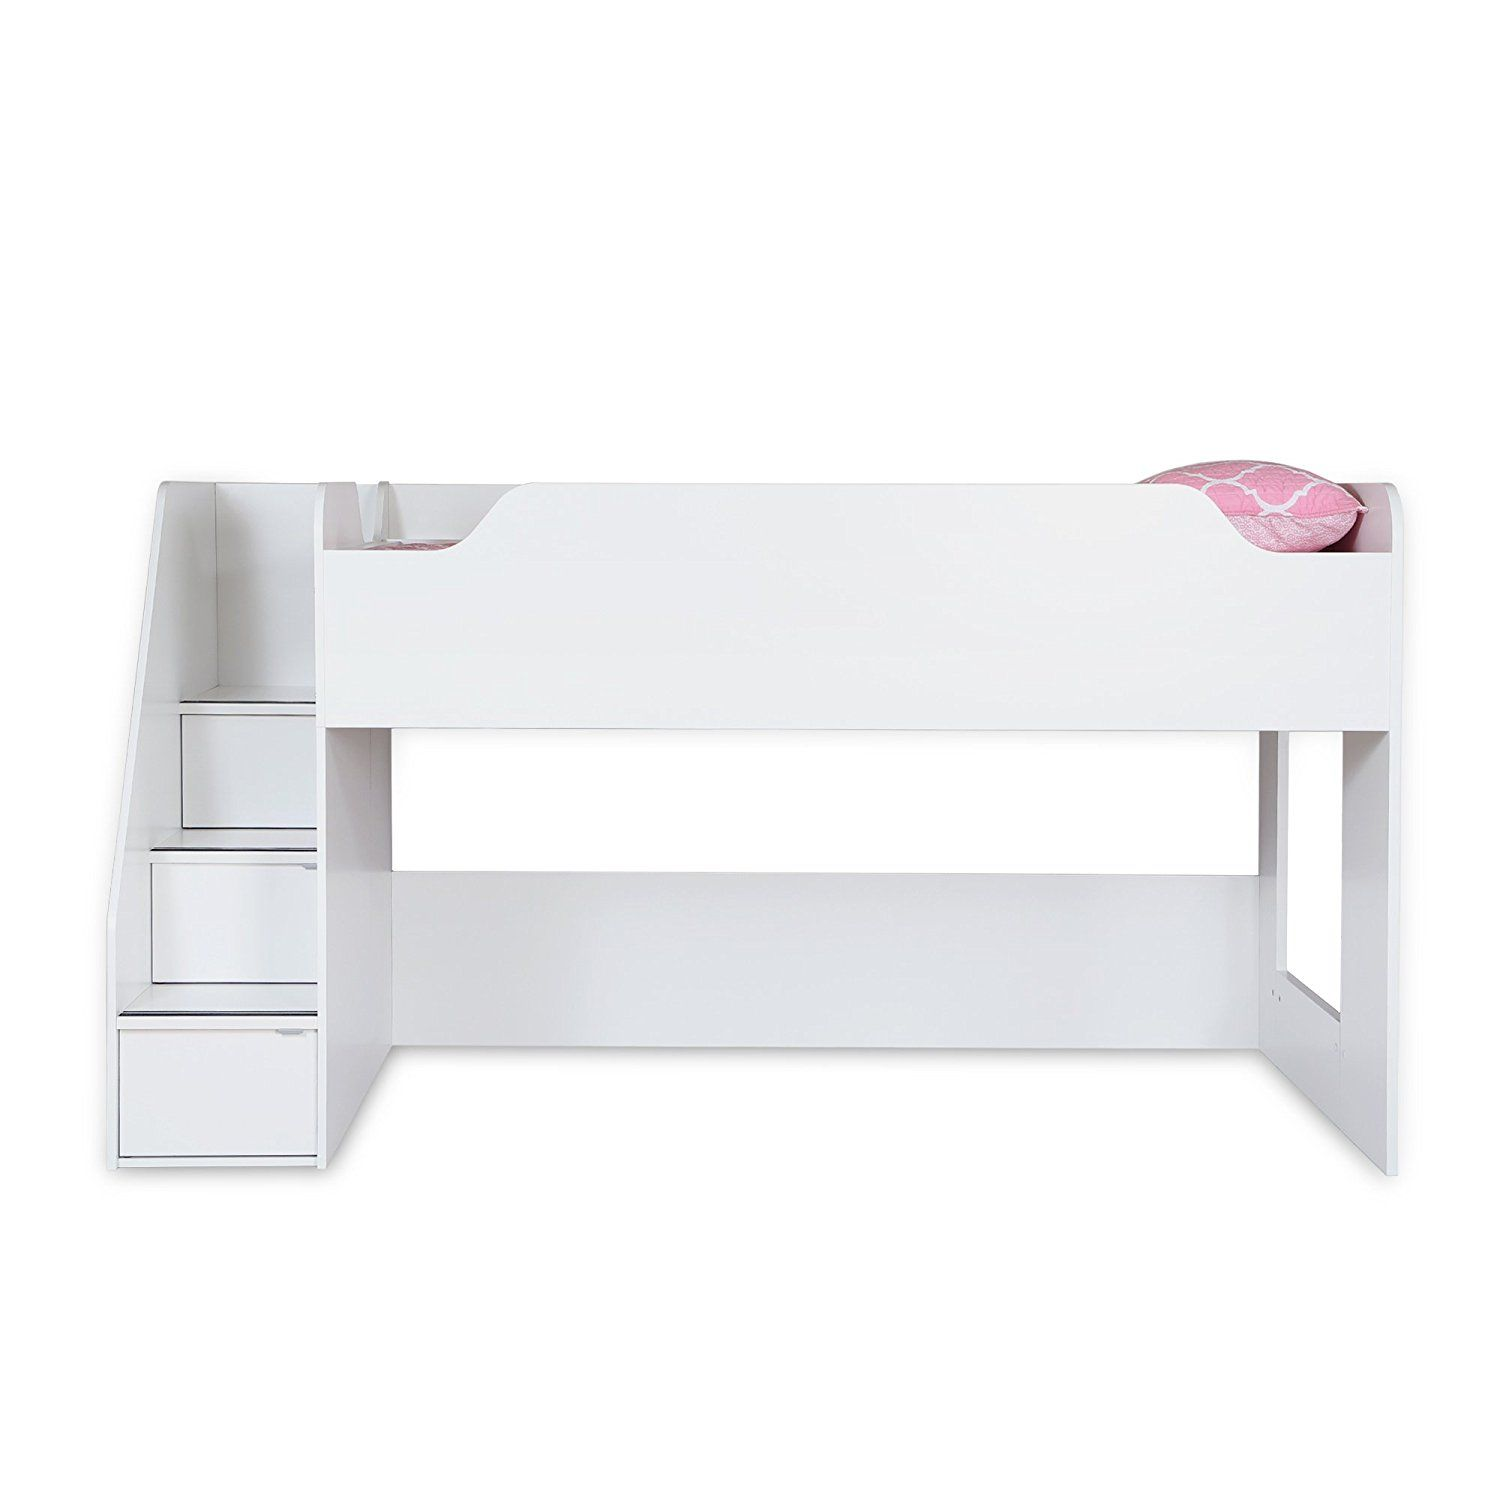 Tuffing loft bed ideas  South Shore Mobby Inch Loft Bed with Stairs Twin Pure White